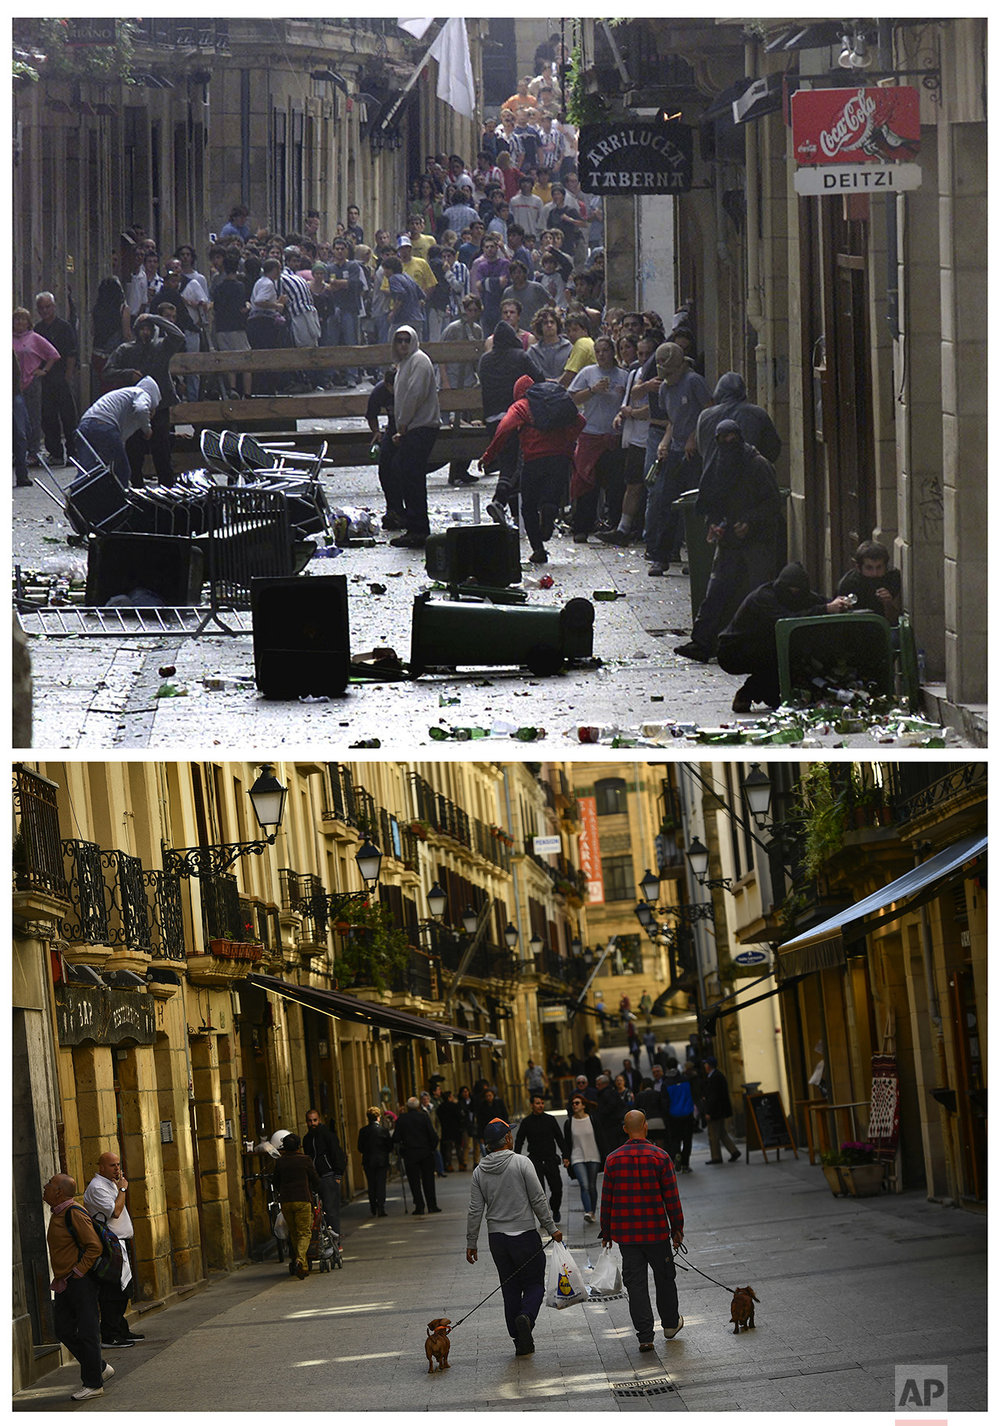 In this two photo combo, masked pro-independence followers of the Basque armed separatist group ETA, prepare to fight against the police during an illegal rally in San Sebastian, northern Spain, on Oct. 26, 2003, top, and people going for a walk in the same street of the old city on April 3, 2017. (AP Photo/Alvaro Barrientos)